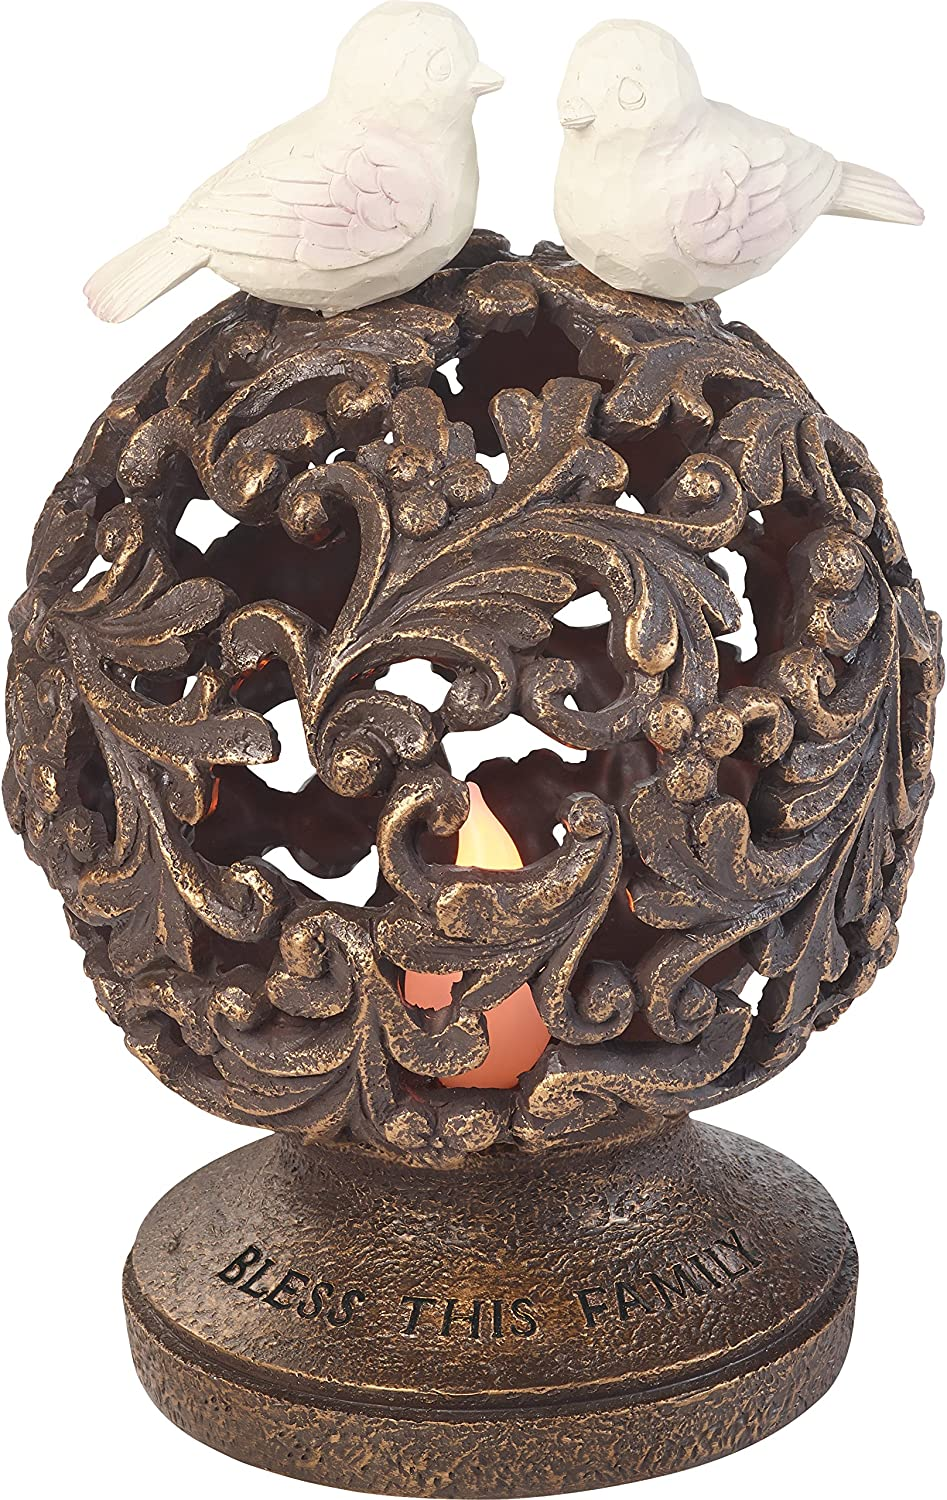 Garden Gifts by Precious Moments Bless This Family Resin LED Solar Rustic Tabletop Garden Décor Sculpture 185009